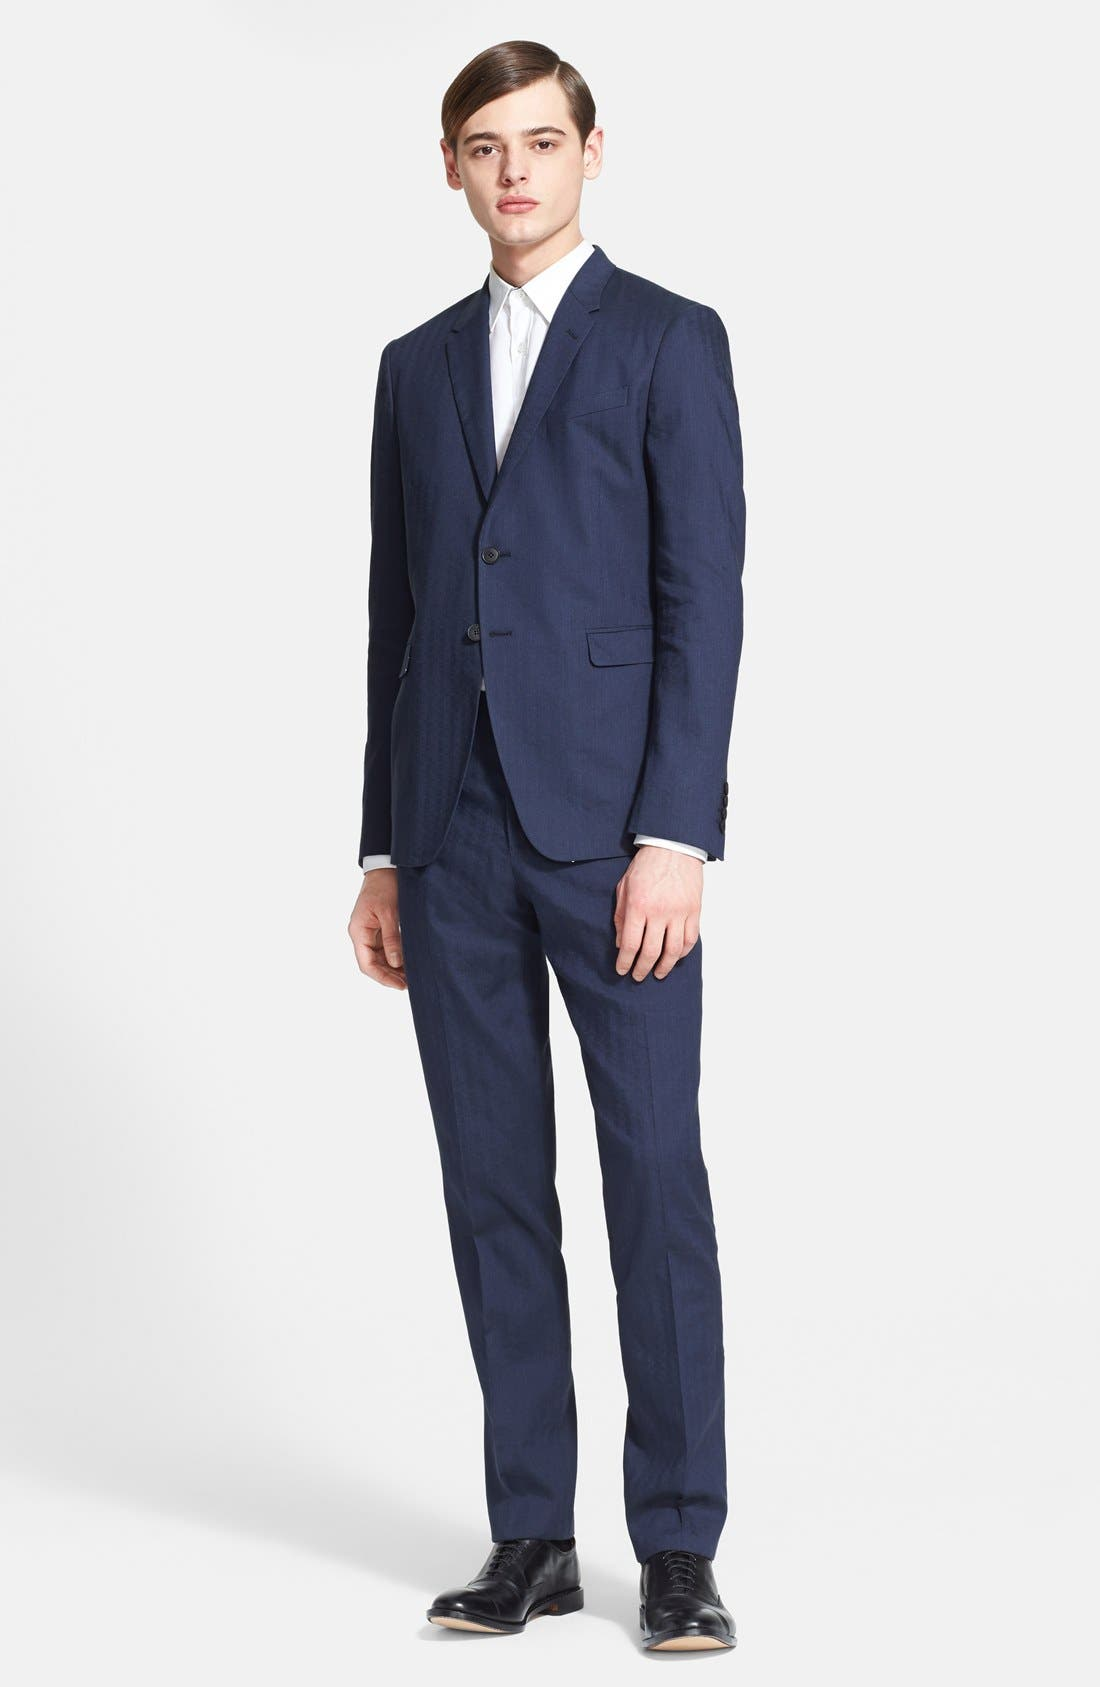 Alternate Image 1 Selected - Paul Smith London 'Kensington' Dot Check Linen Blend Suit